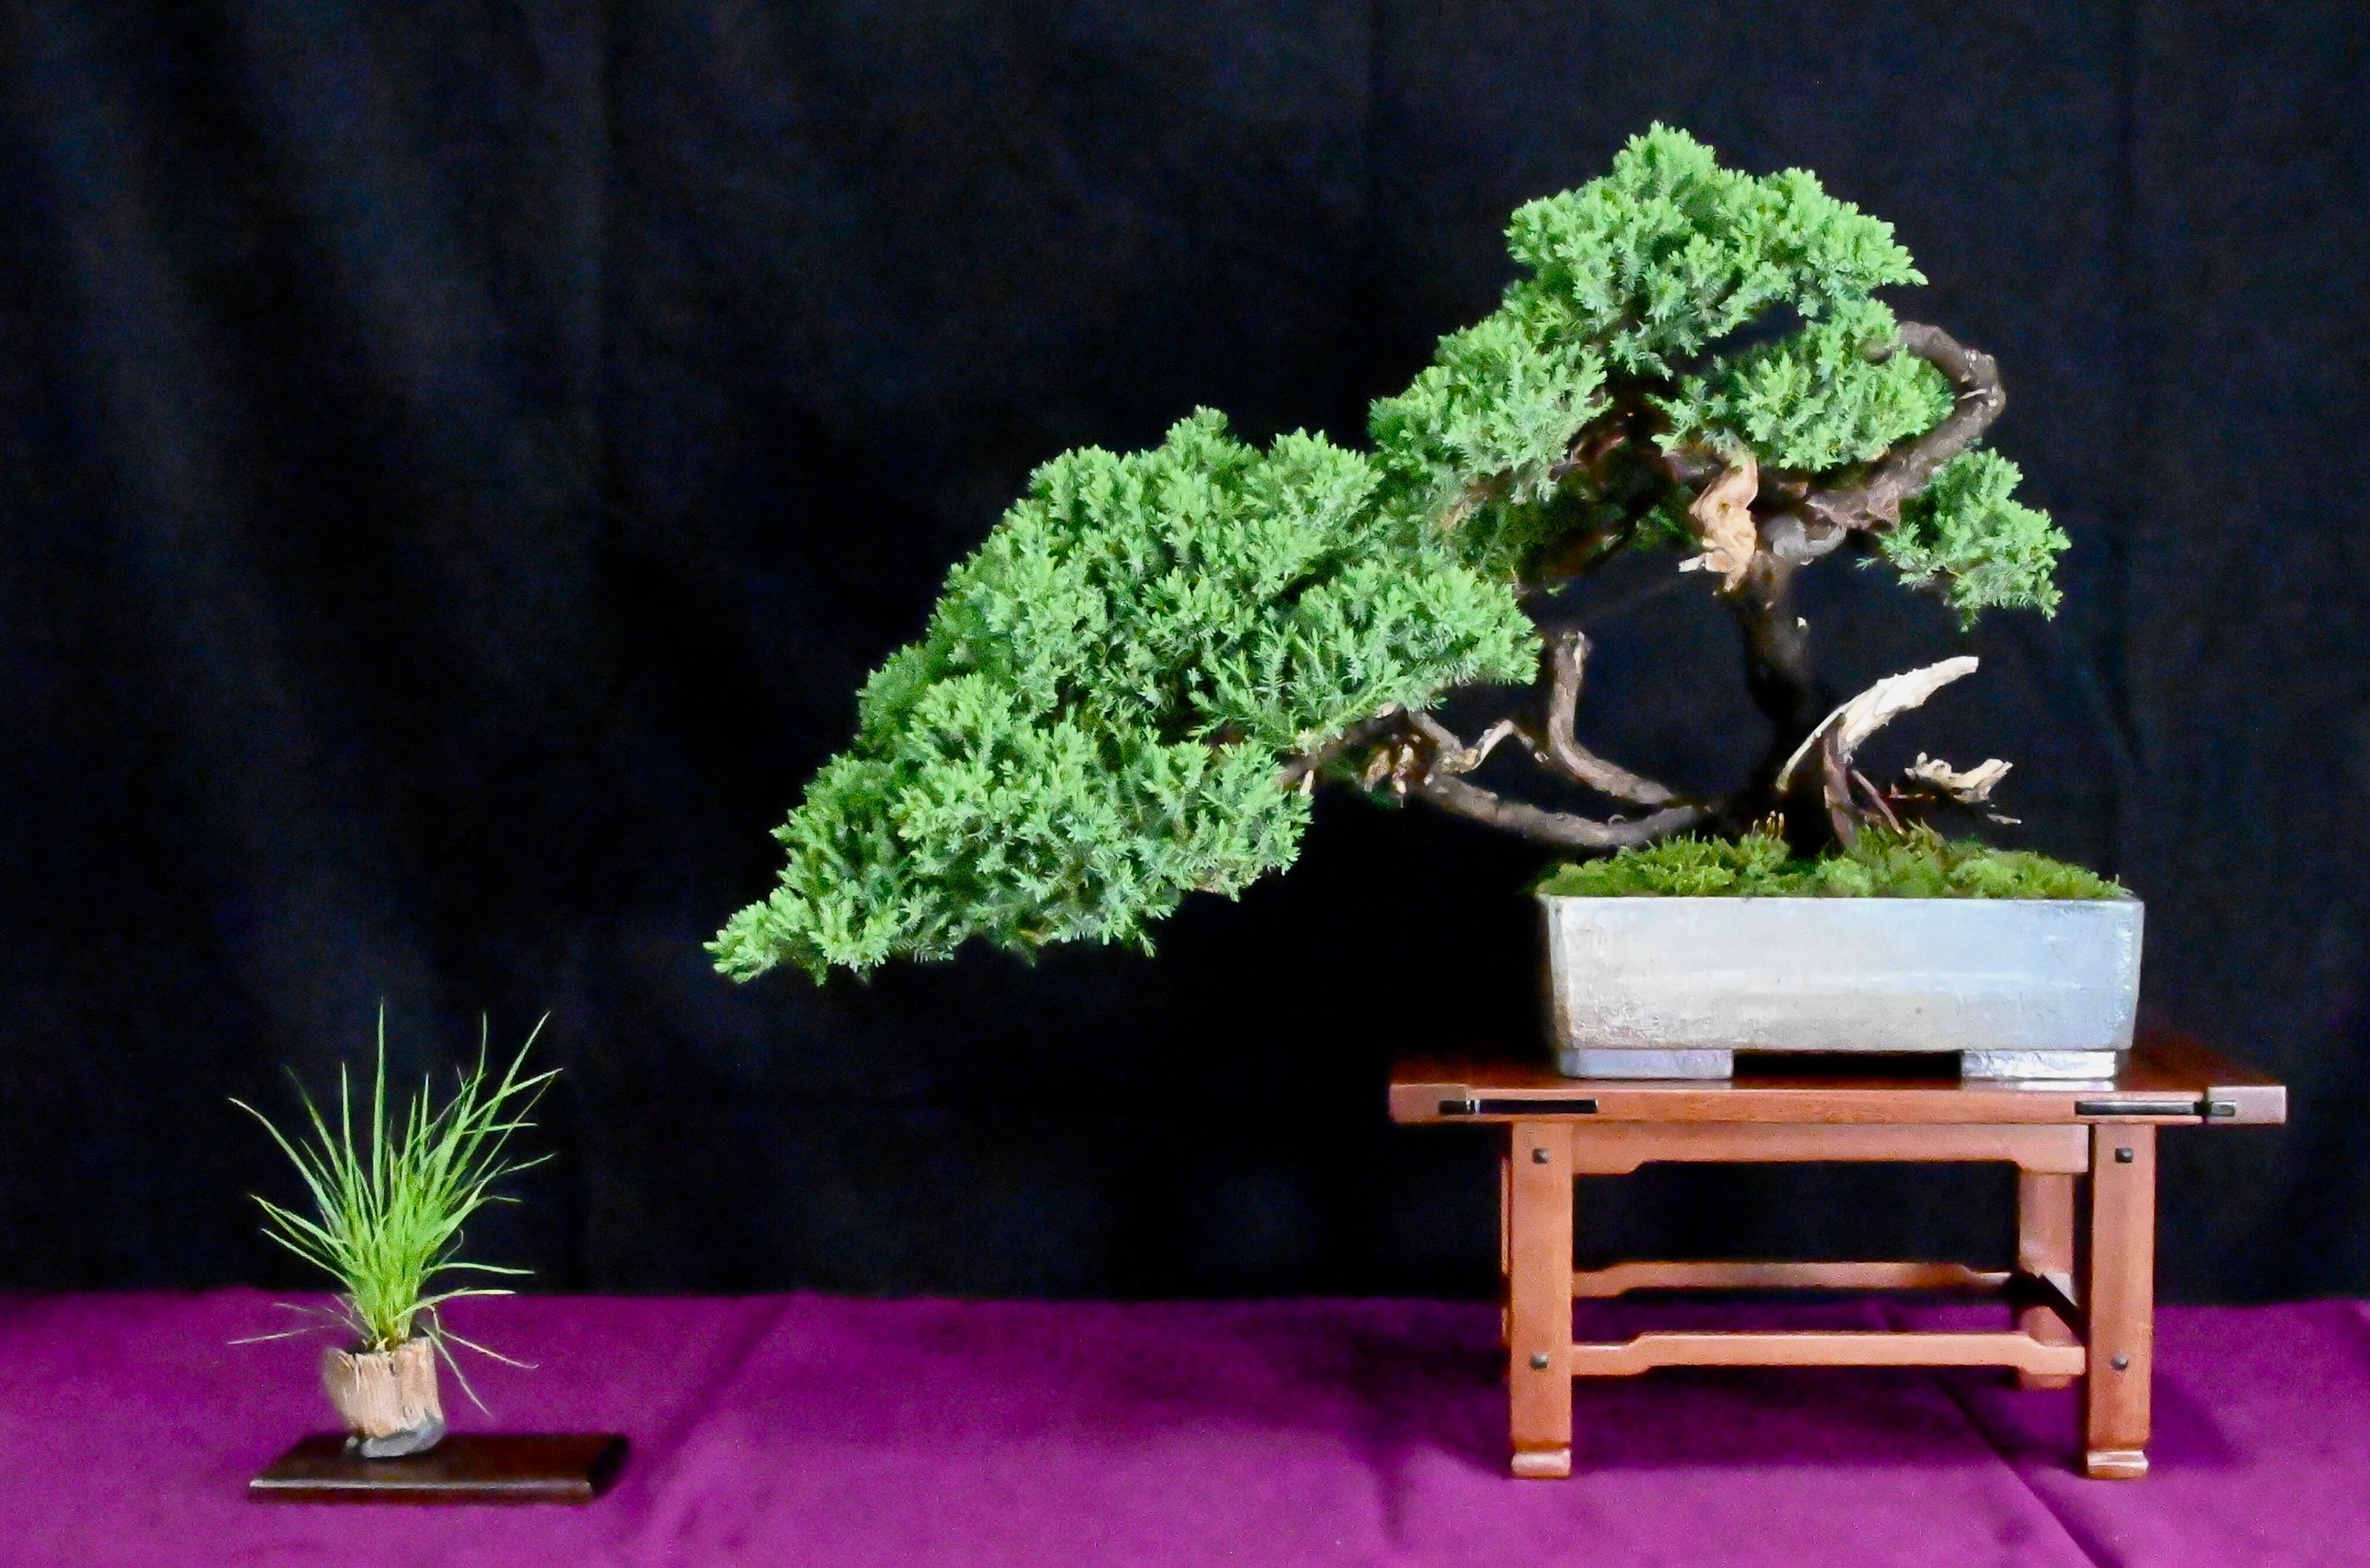 bonsai exhibit 13.jpeg